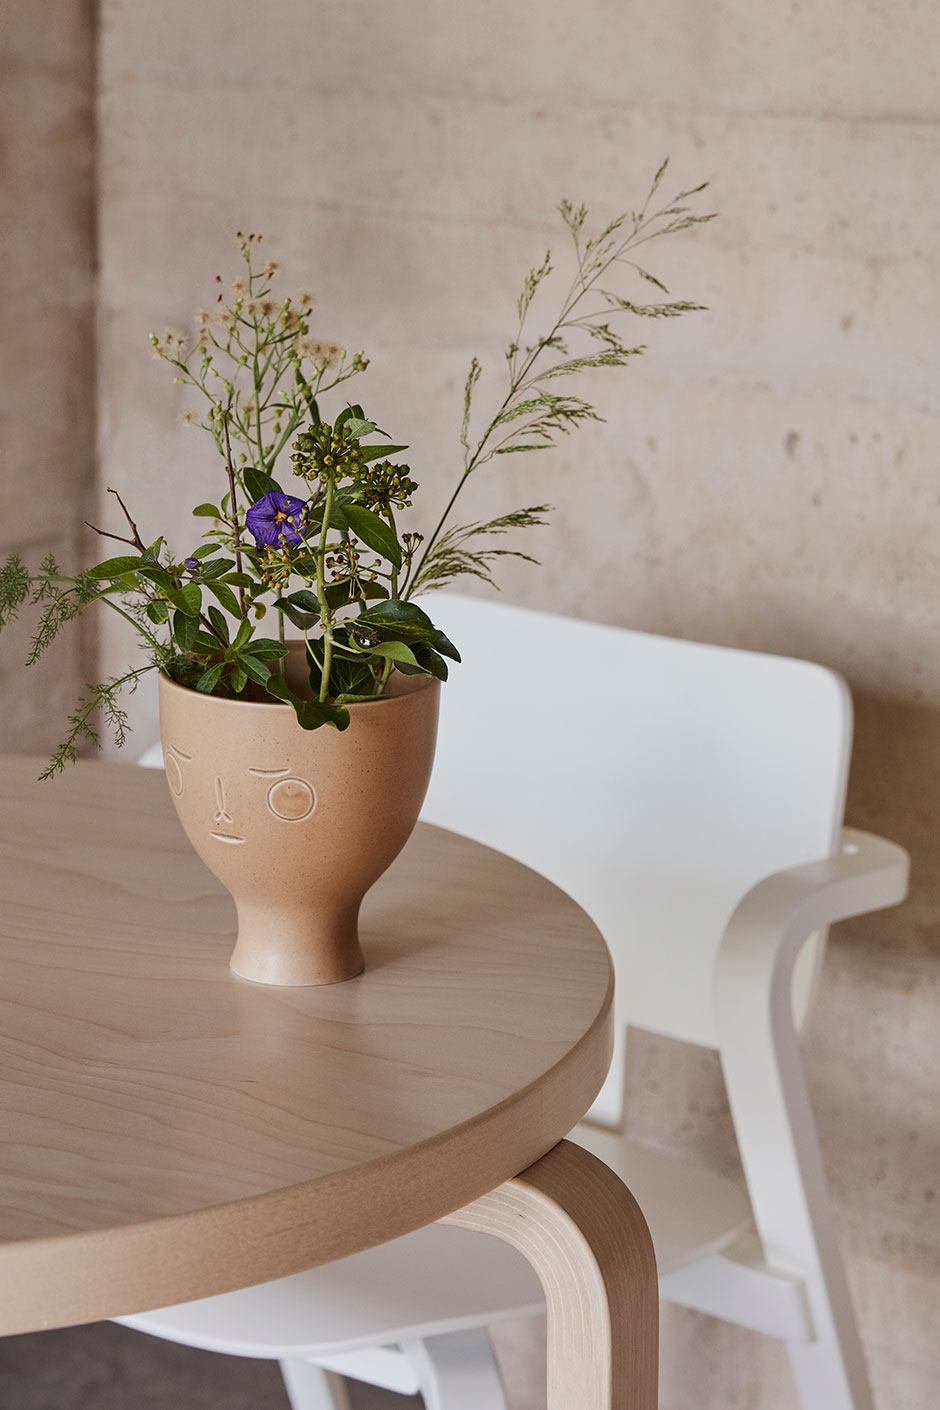 Thonet Home is an edited capsule collection for residential spaces